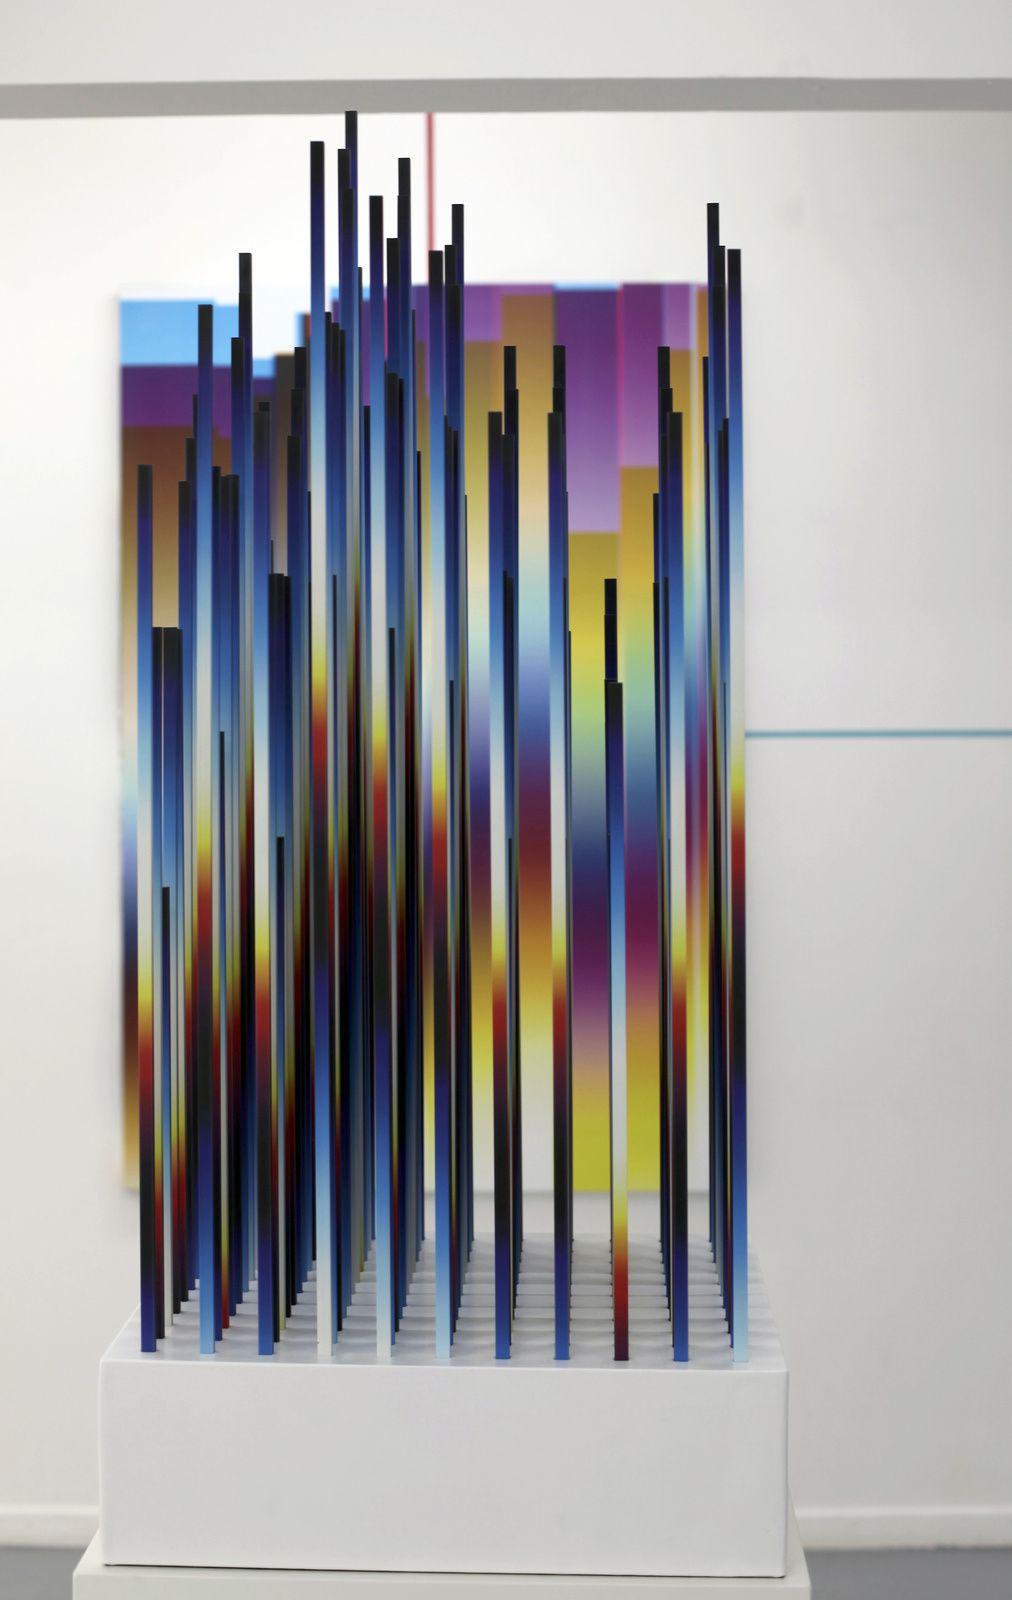 """Chromadynamica Dimensional 2 "", 2018 de Felipe PANTONE - Courtesy Galerie Magda Danysz - Paris © Photo Éric Simon"